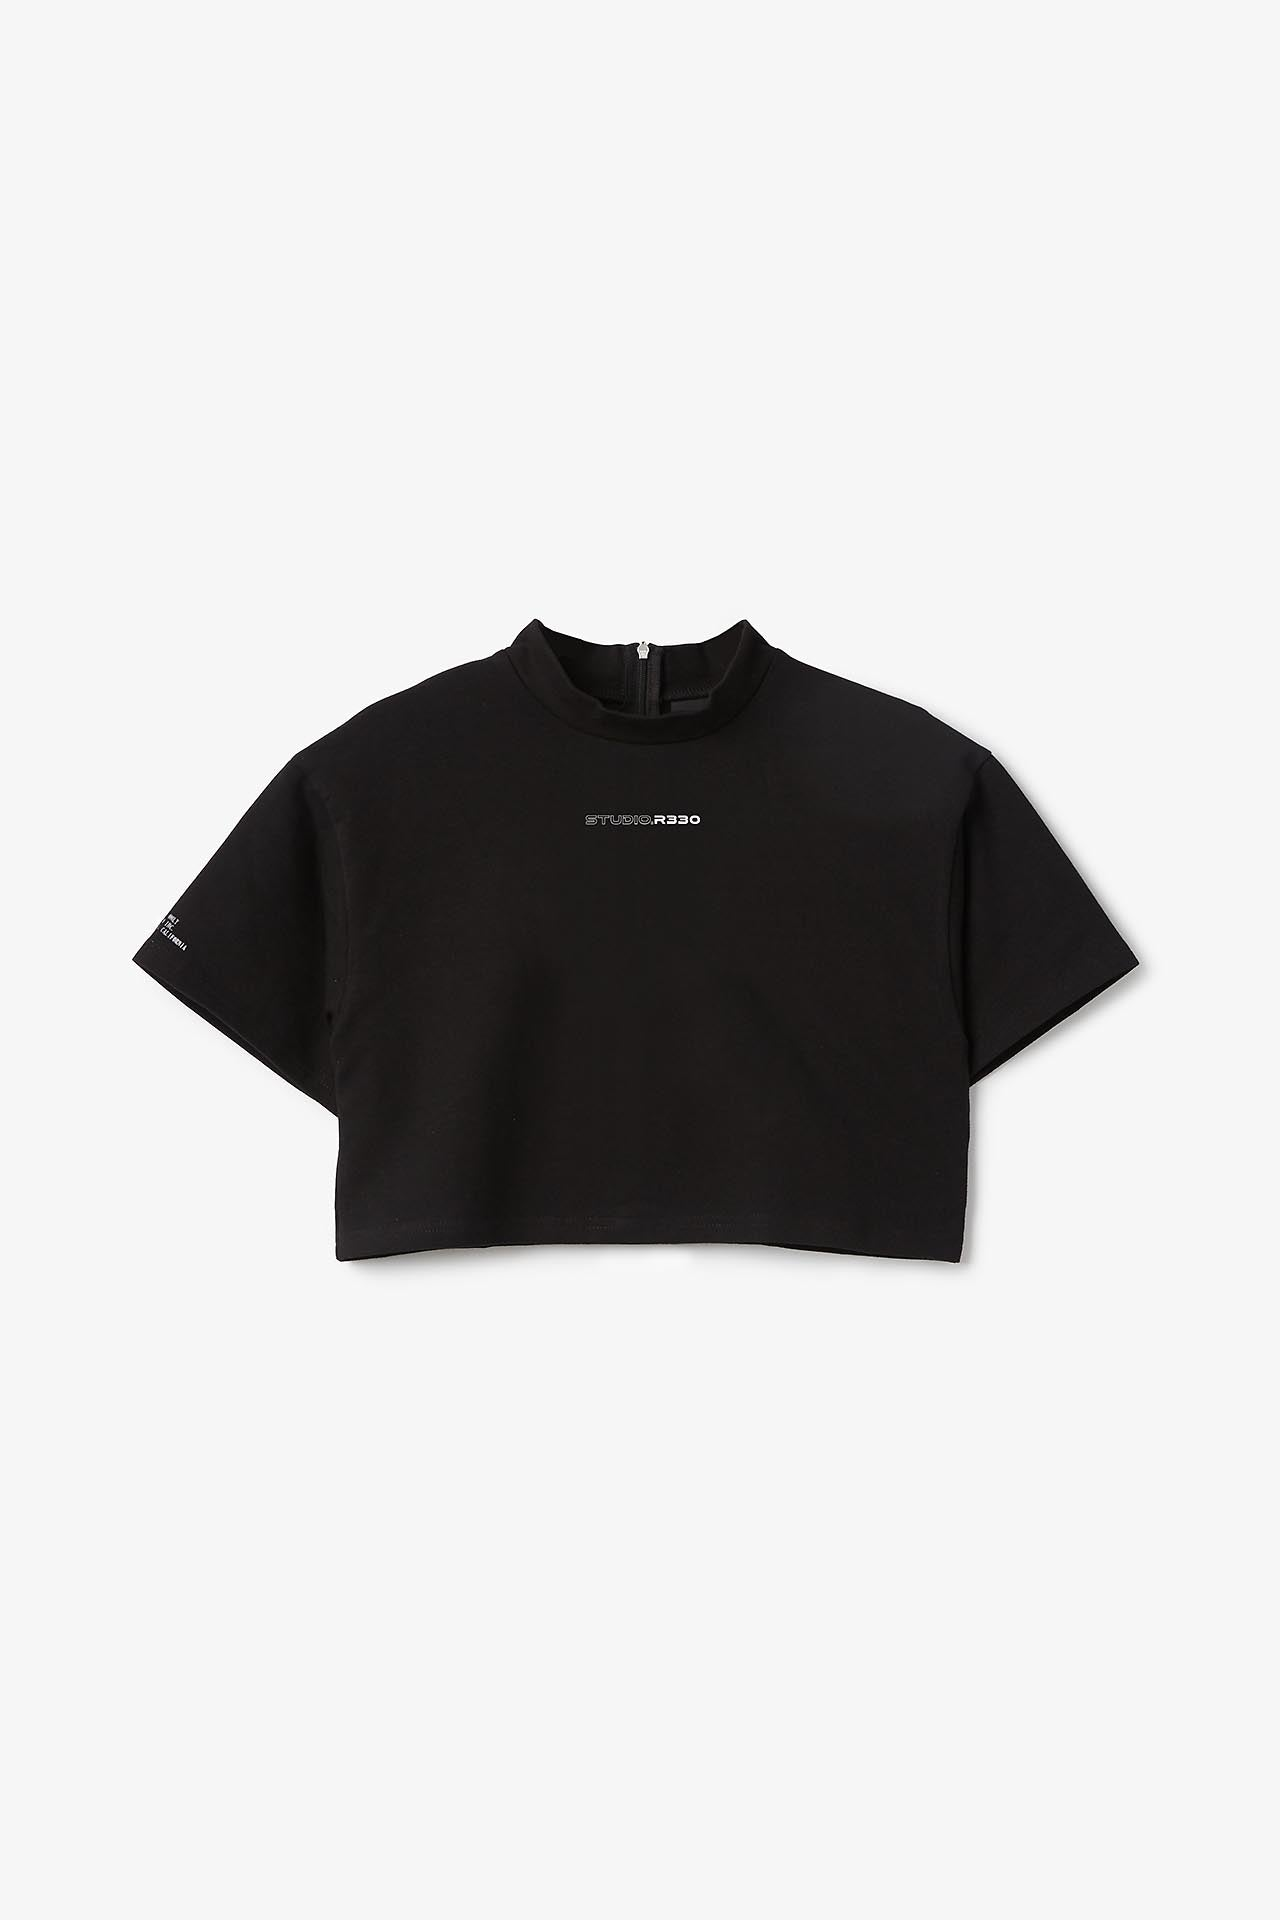 Women's Cropped Logo Tee